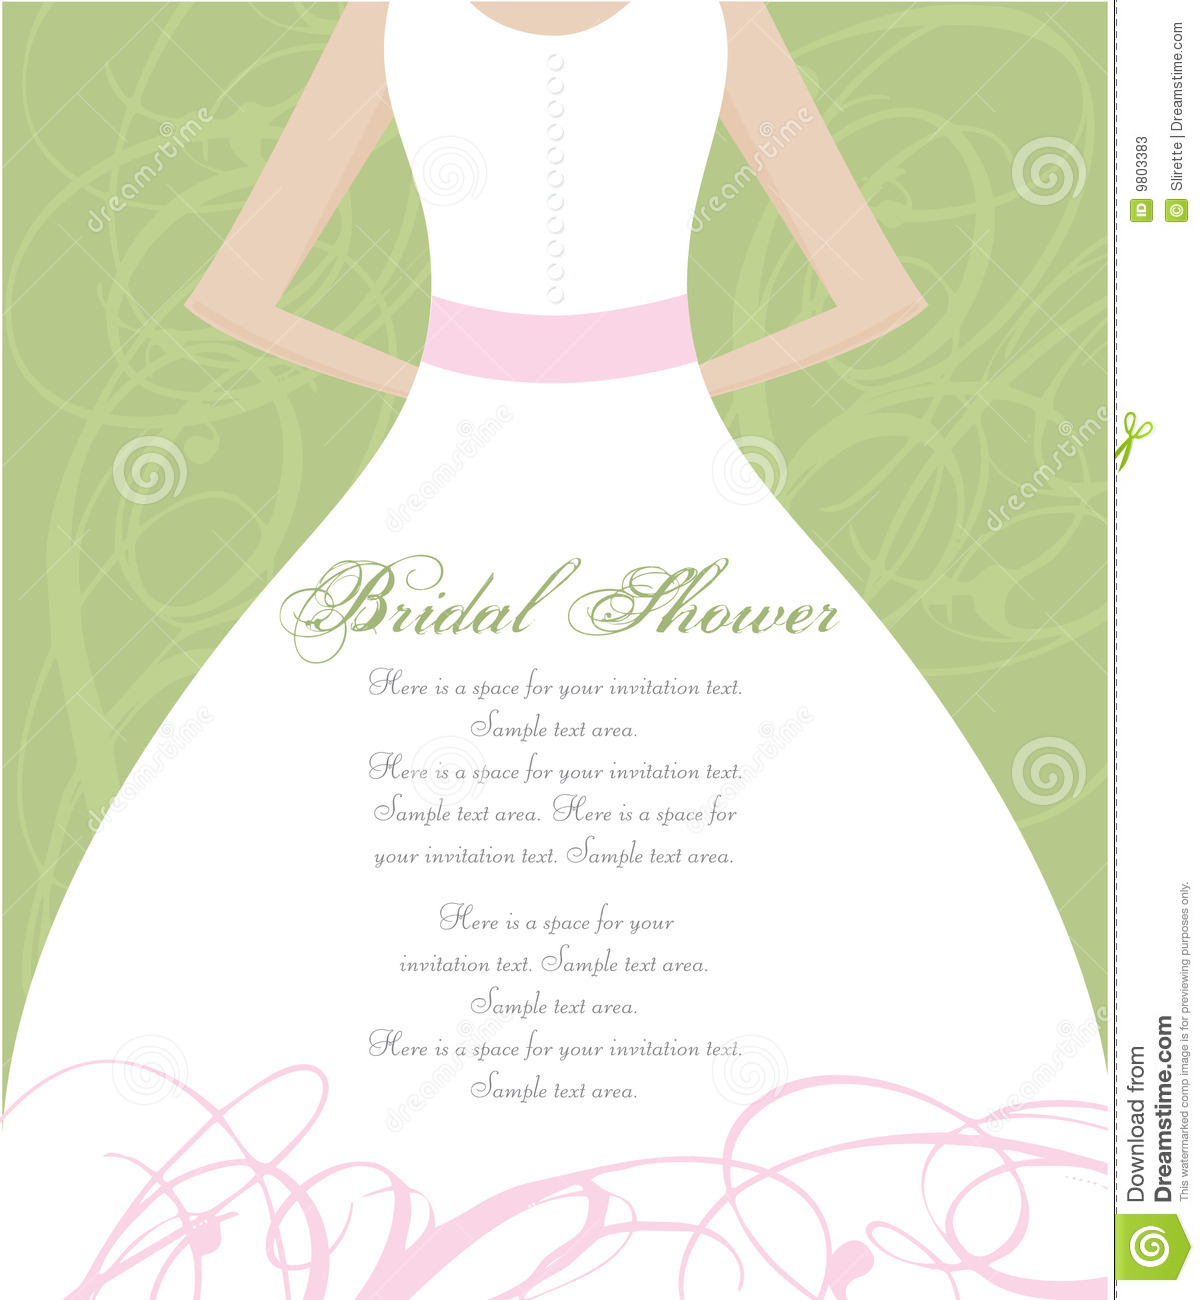 wedding shower invitations wedding shower invitation clipart clipart suggest 30516